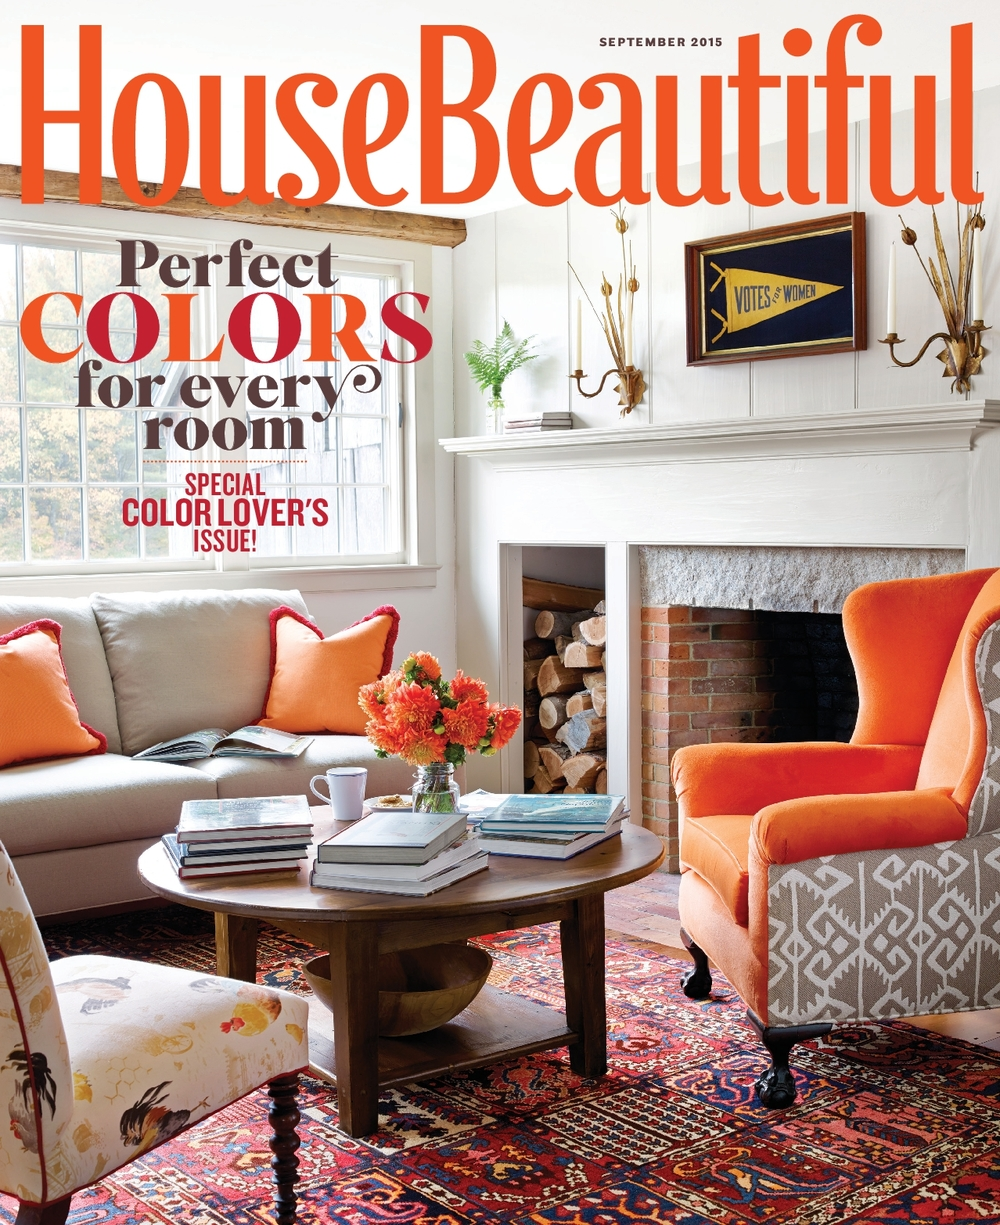 HouseBeautifulMag.jpg